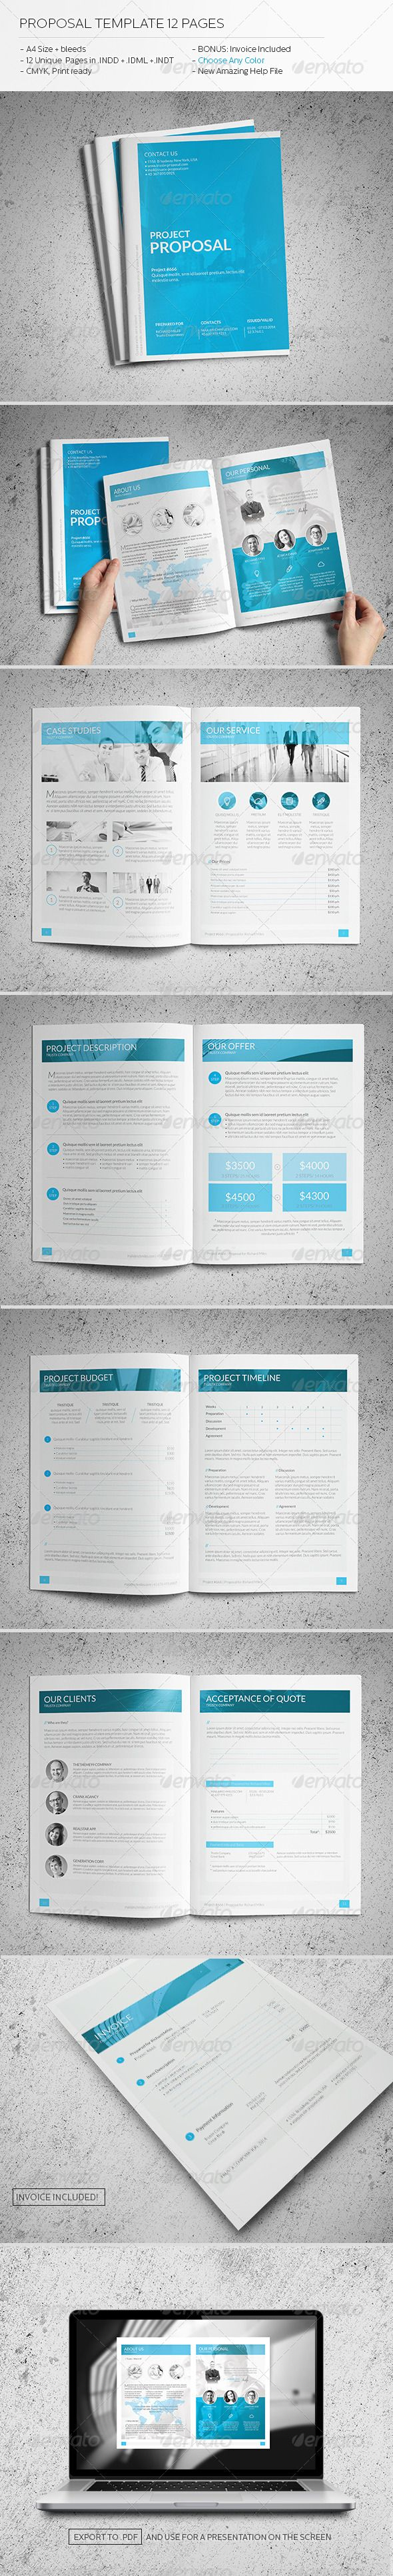 Commercial Proposal Format Fair Commercial Proposal Template #12  Branding  Pinterest  Proposal .